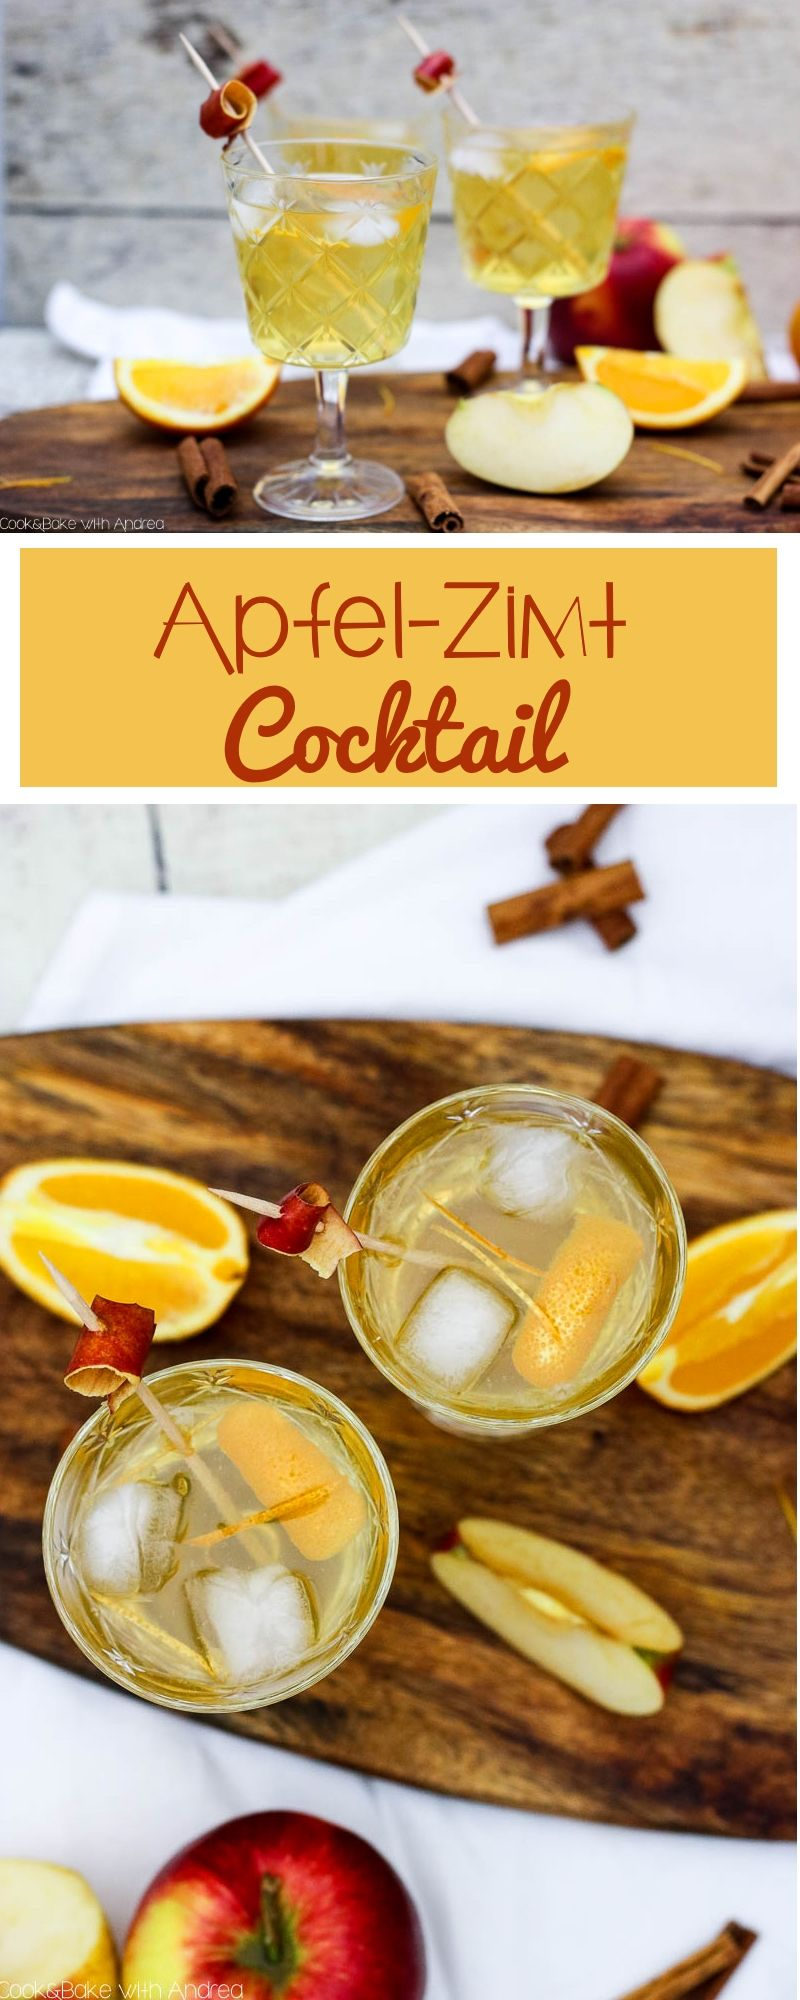 Winterlicher Apfel-Zimt-Cocktail mit Sinalco | C&B with ...